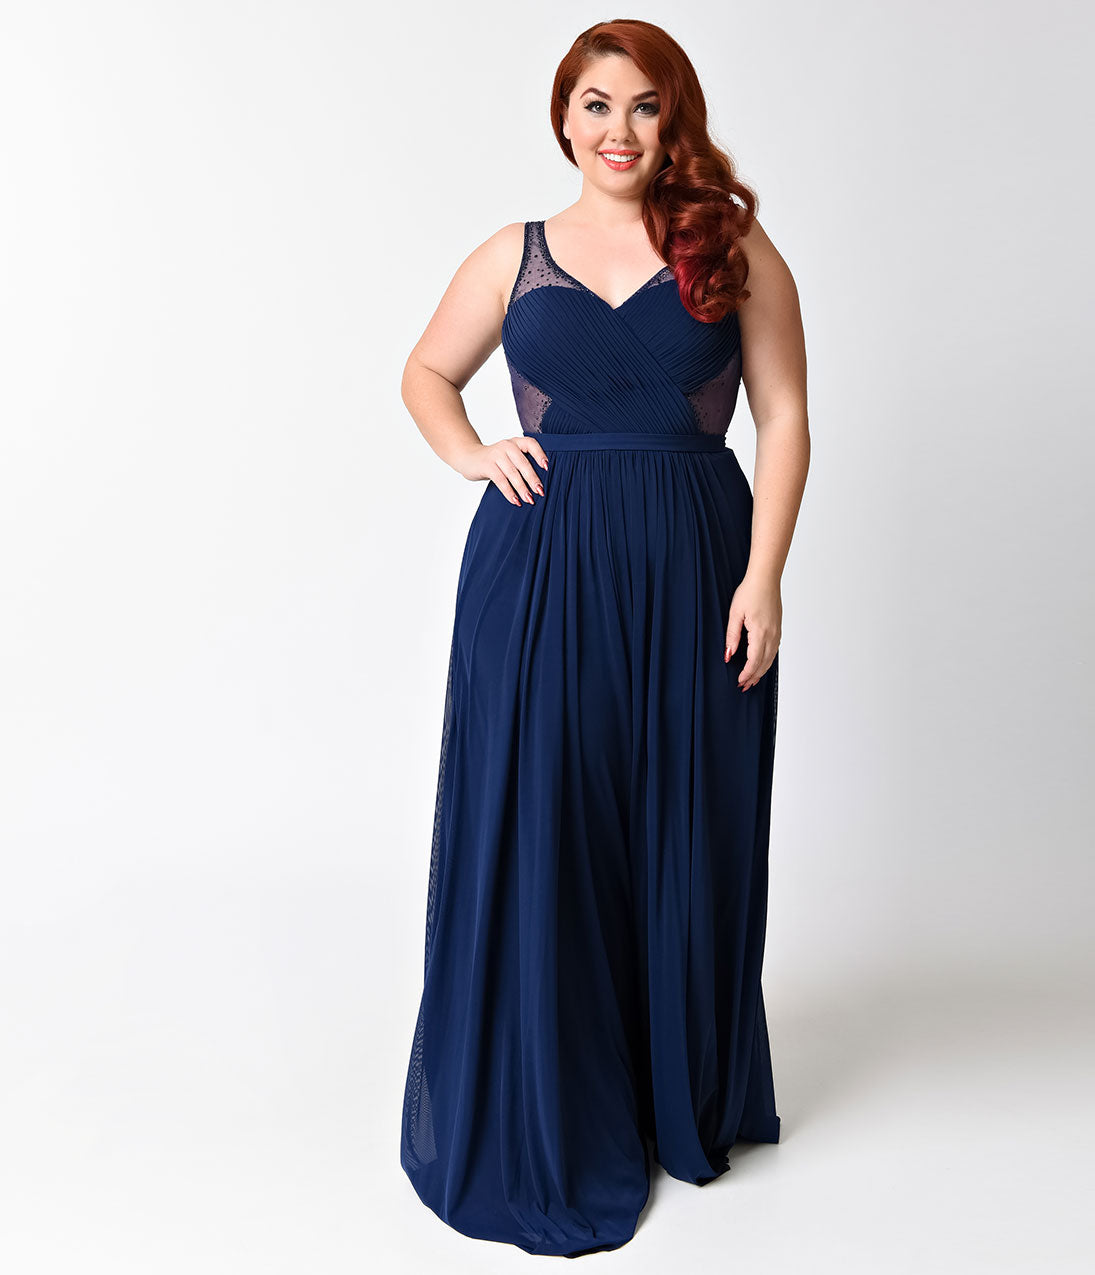 21134c06a4e Plus Size Royal Blue Sexy Embellished Chiffon Dress – Unique Vintage